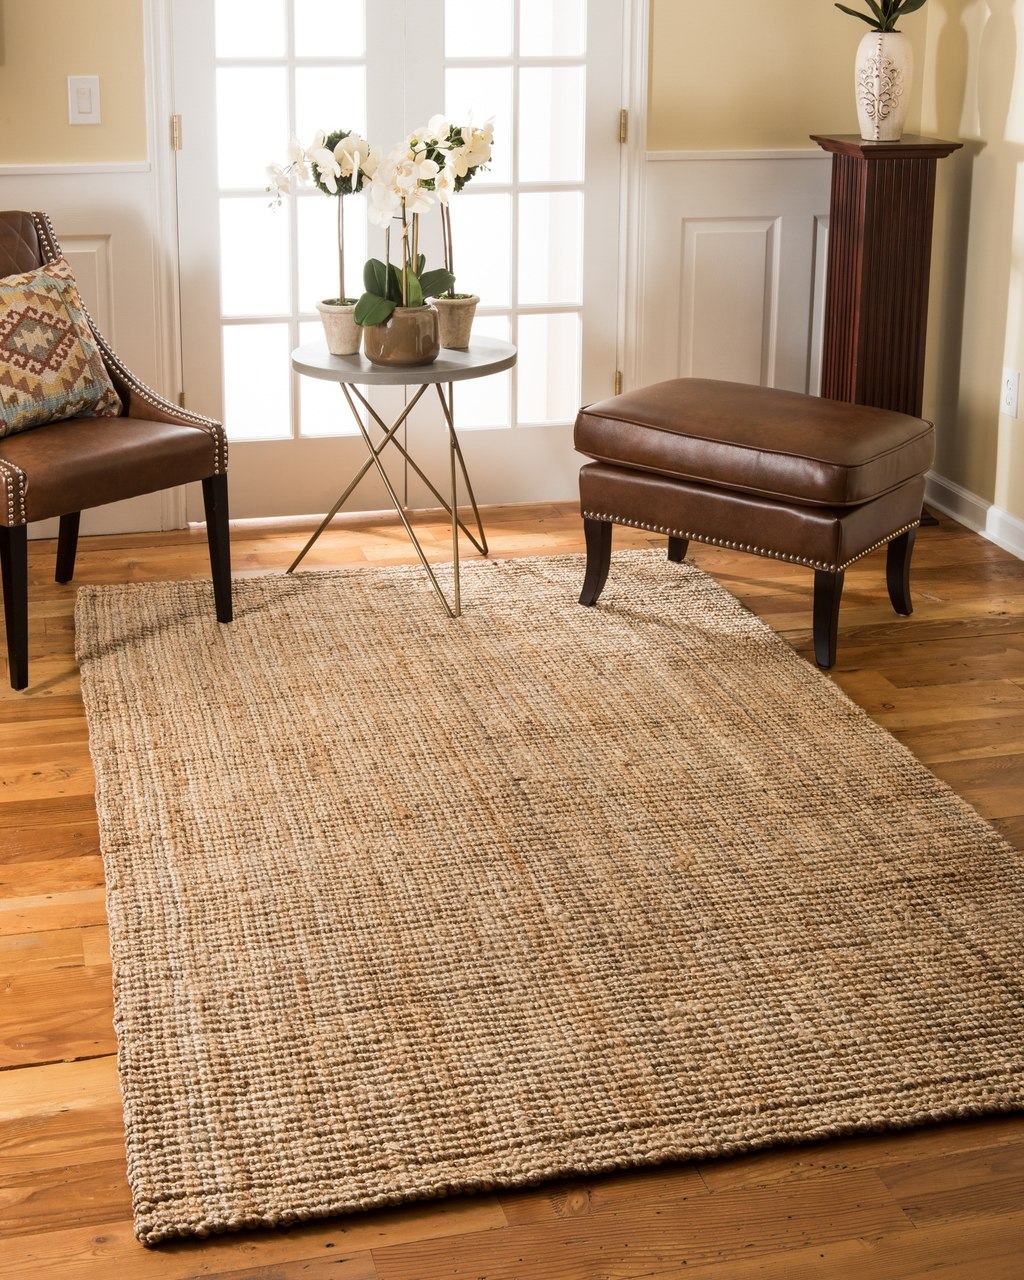 ... image alt text: chambers jute rug; earth friendly: yes; handmade: yes; VMQROOH